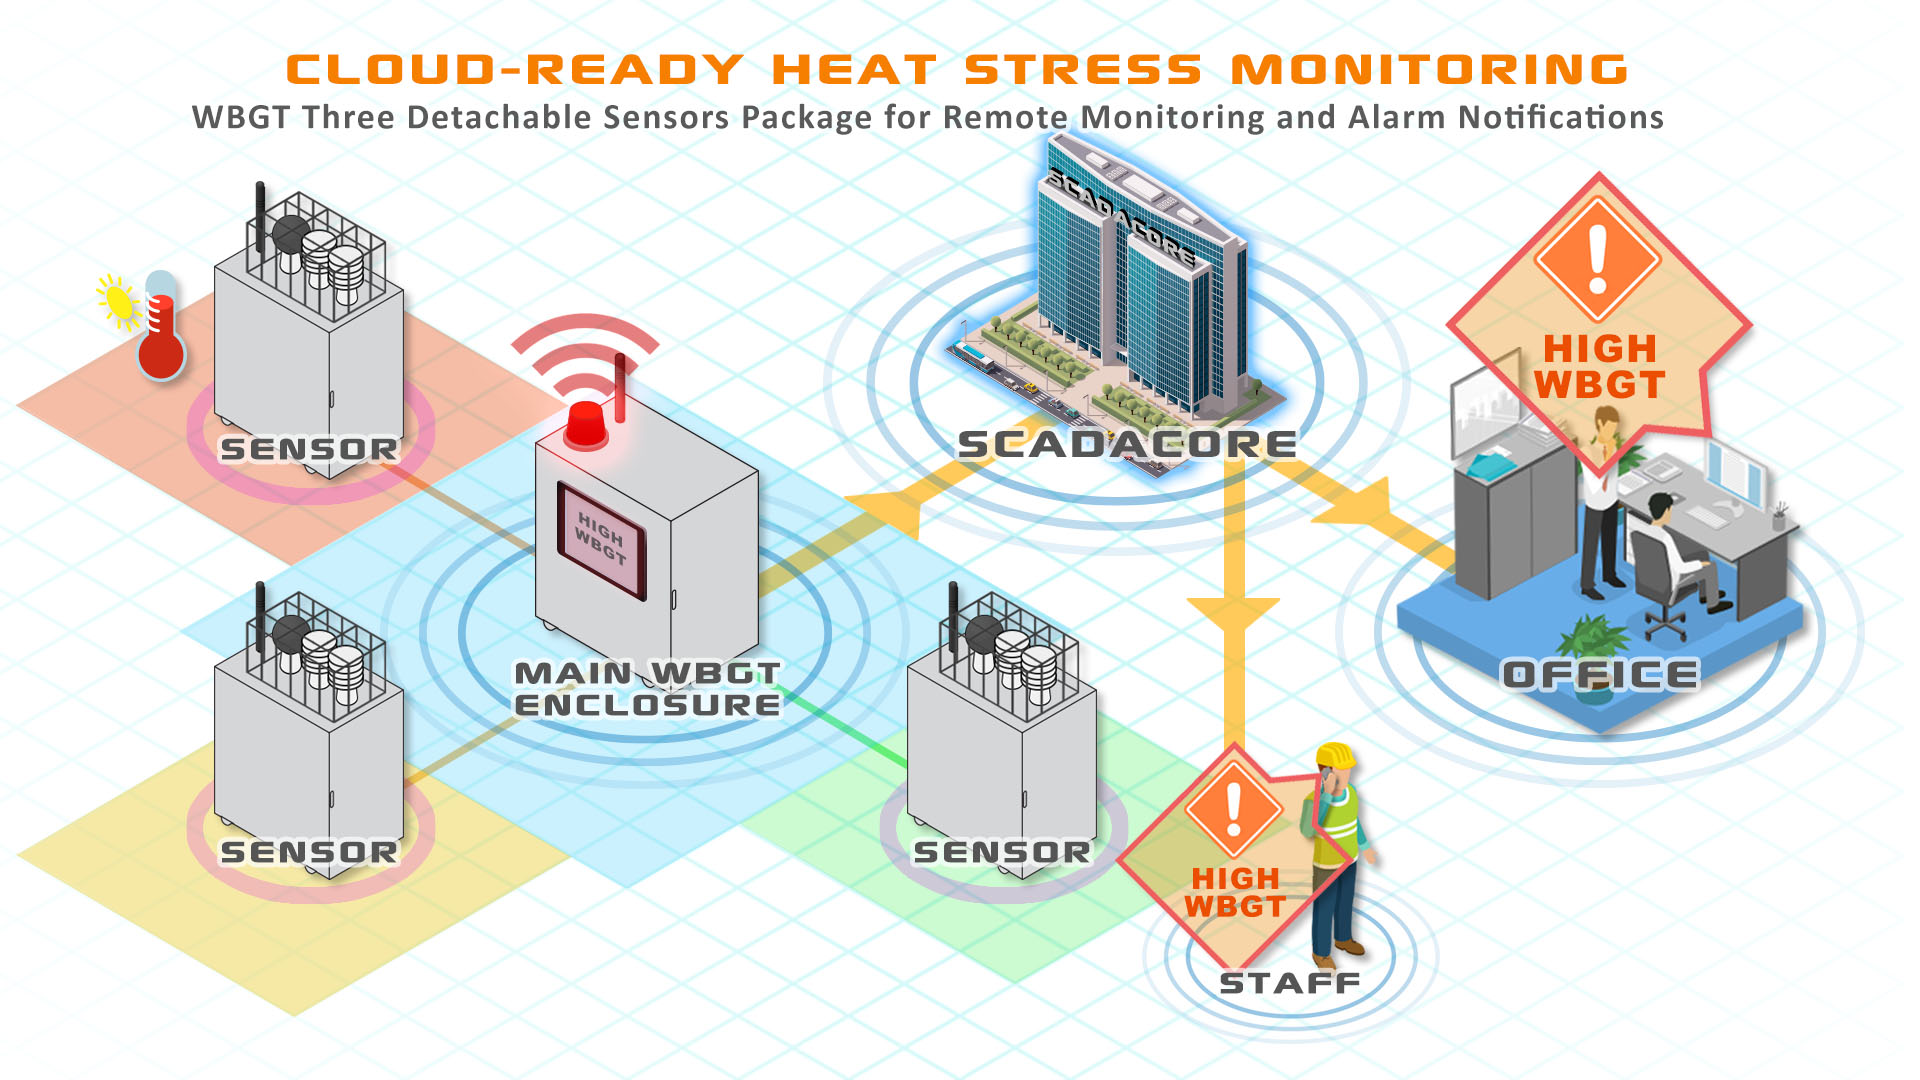 Cloud-Ready WBGT Heat Stress Monitoring with Multiple Location Sensors for HSE, Manufacturing, and Military